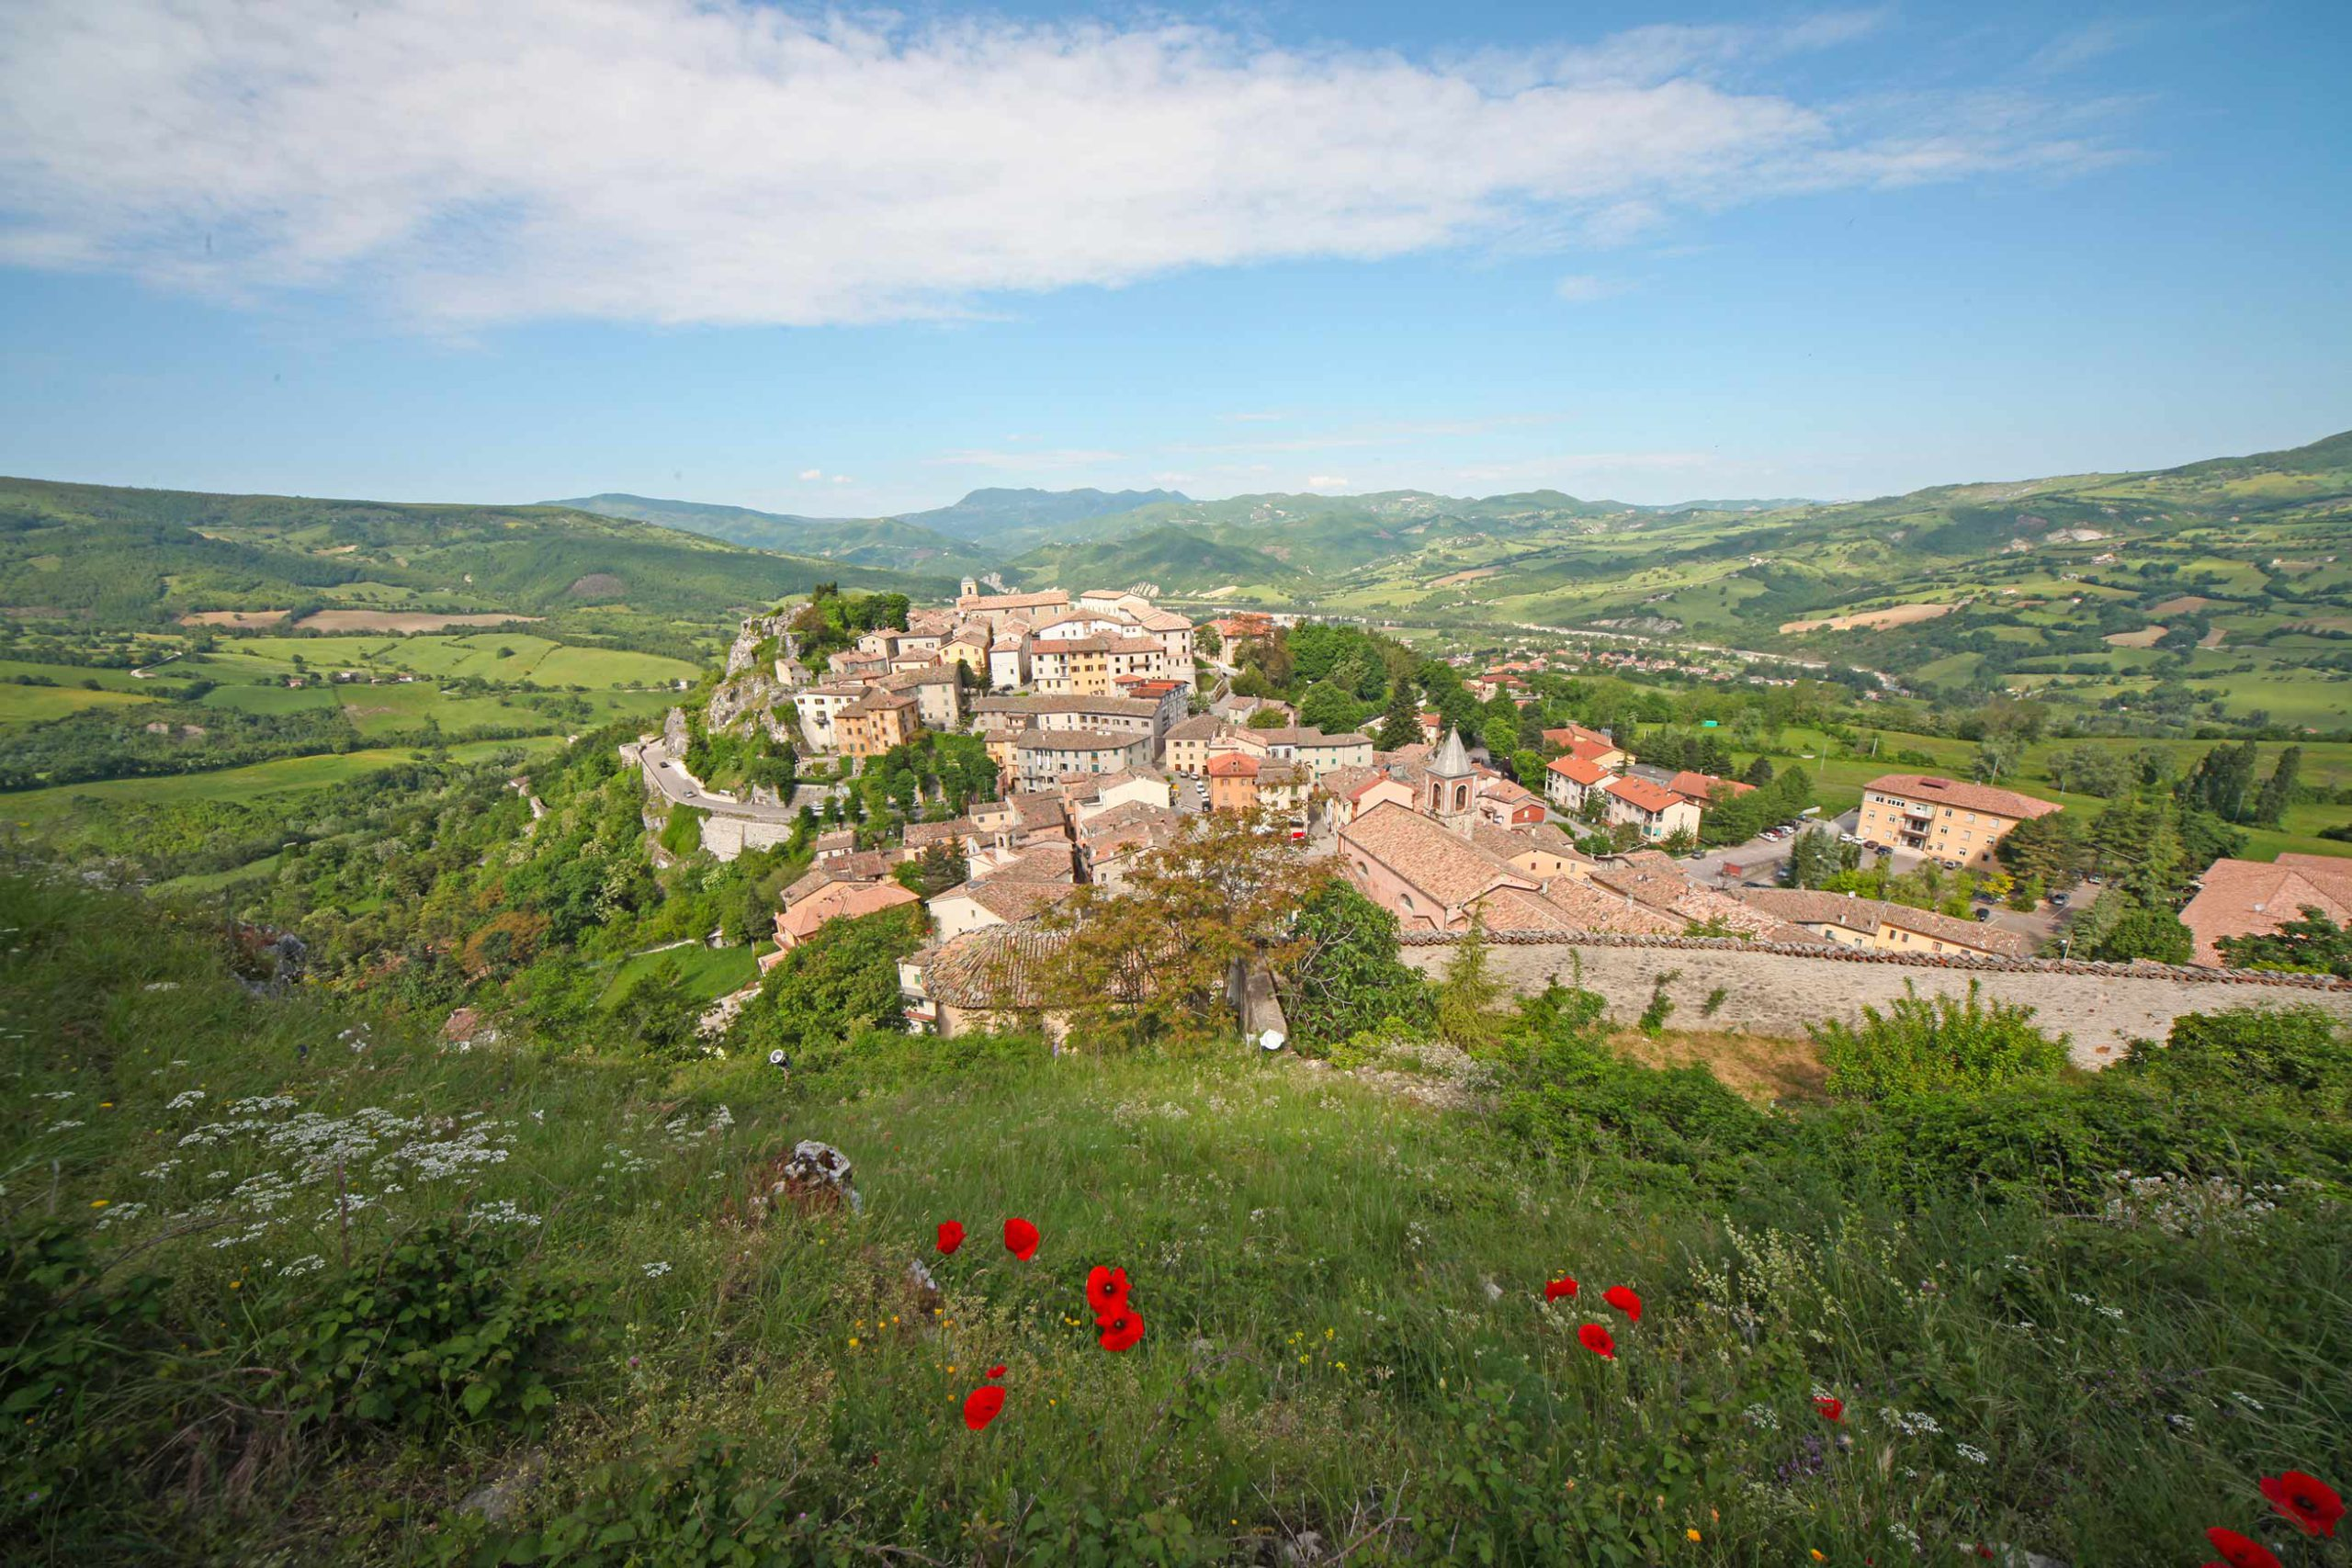 Pennabilli, one of the most beautiful villages in Emilia-Romagna